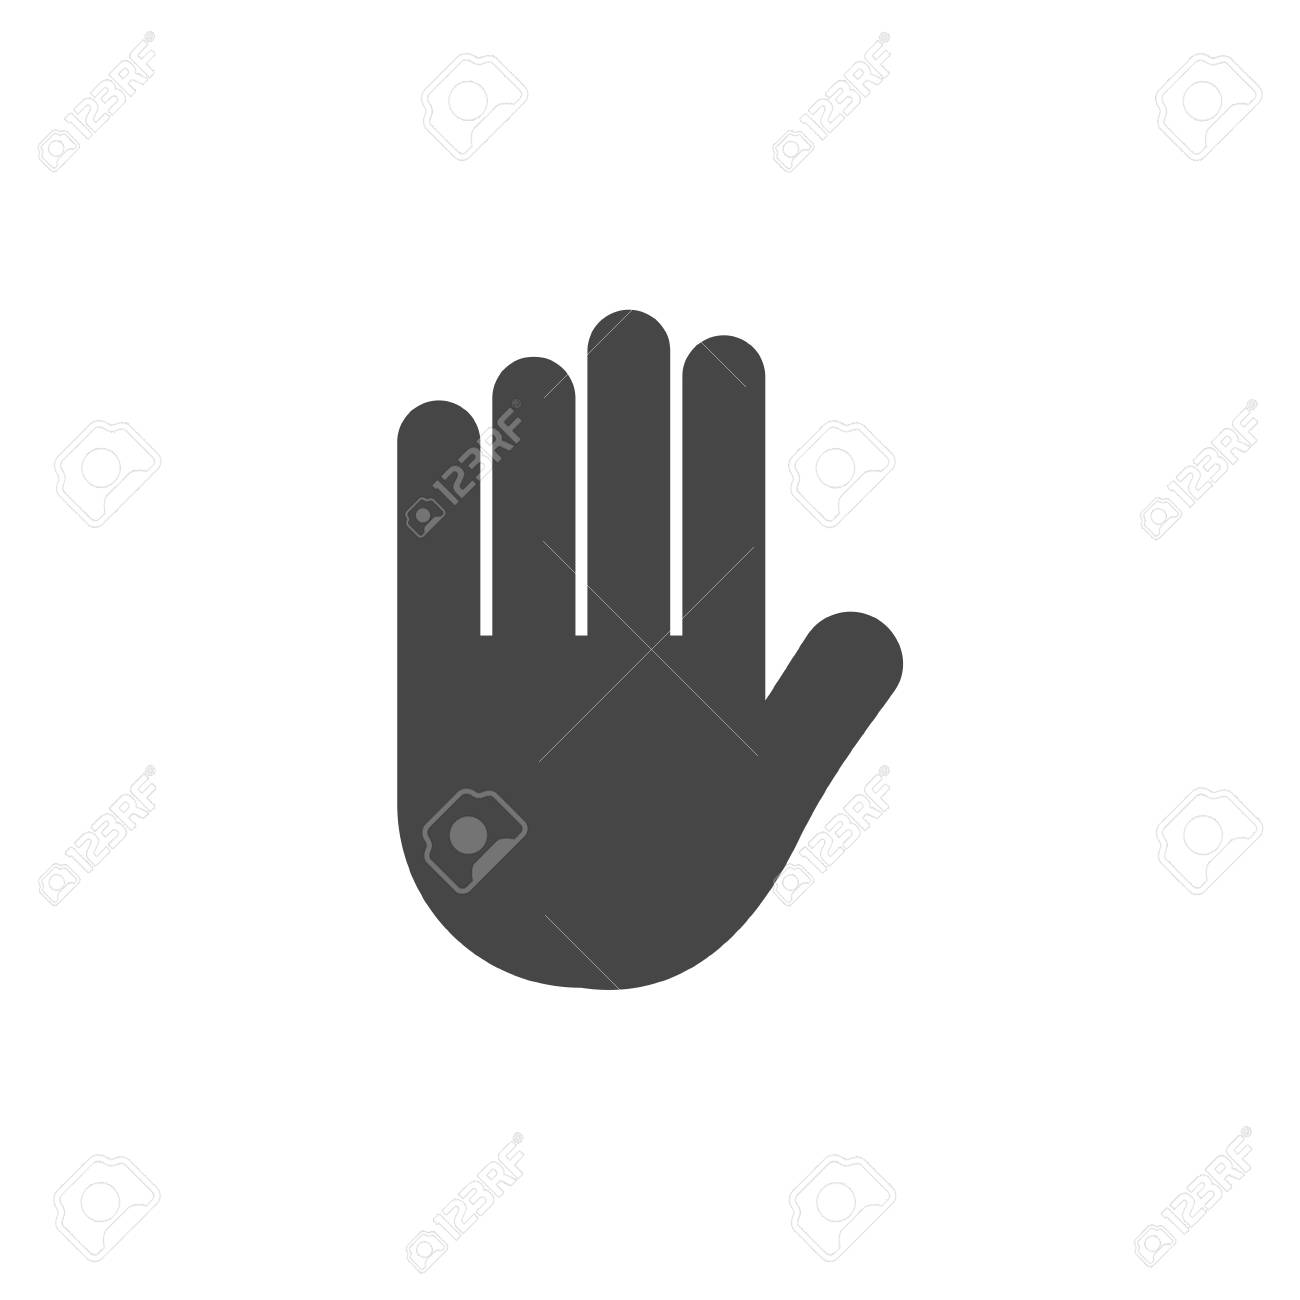 Stop Hand Icon Vector Royalty Free Cliparts Vectors And Stock